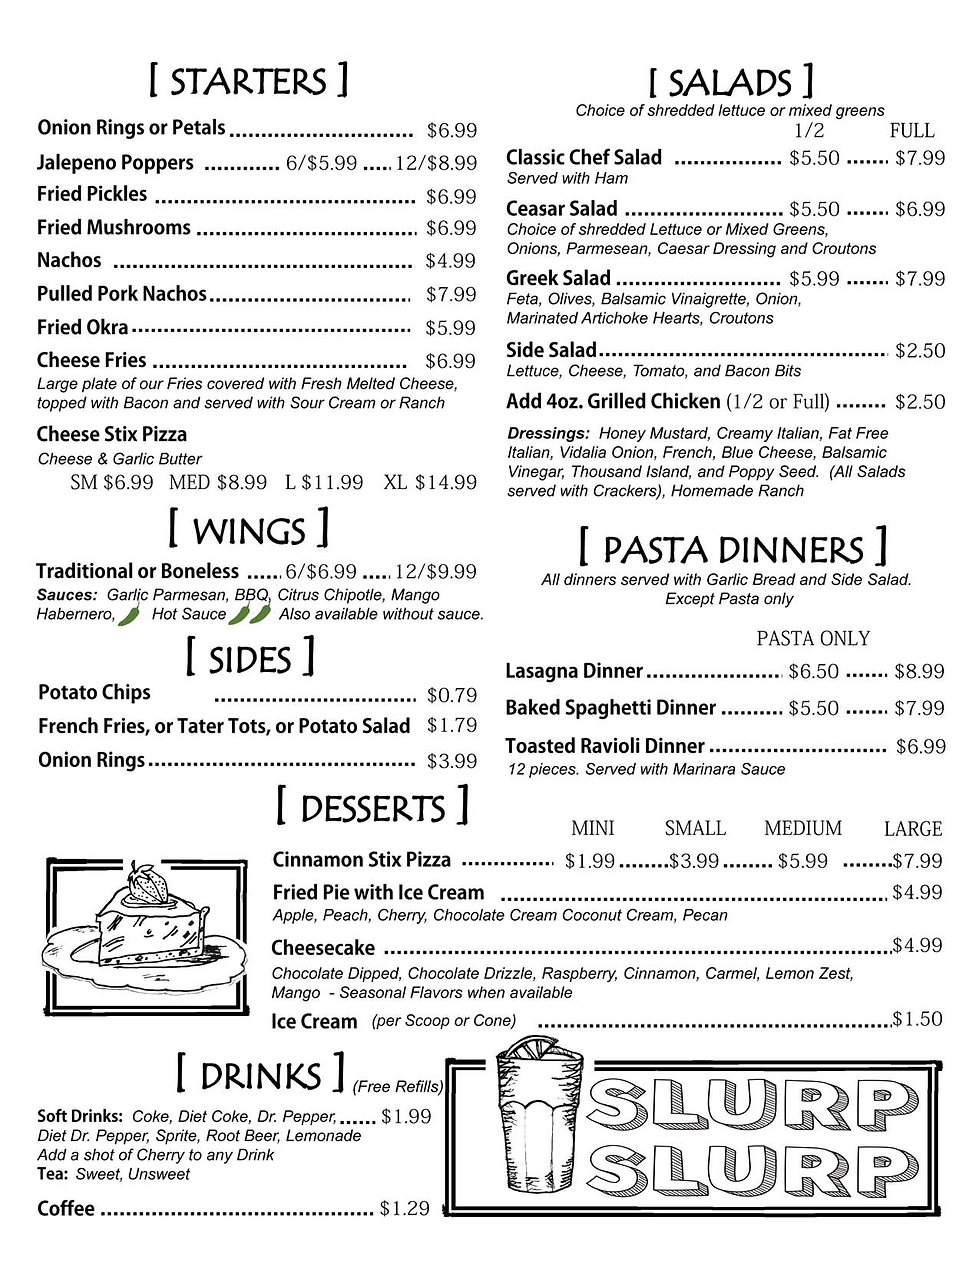 Hilltop Black Menu Compiled Page 1 19.7.